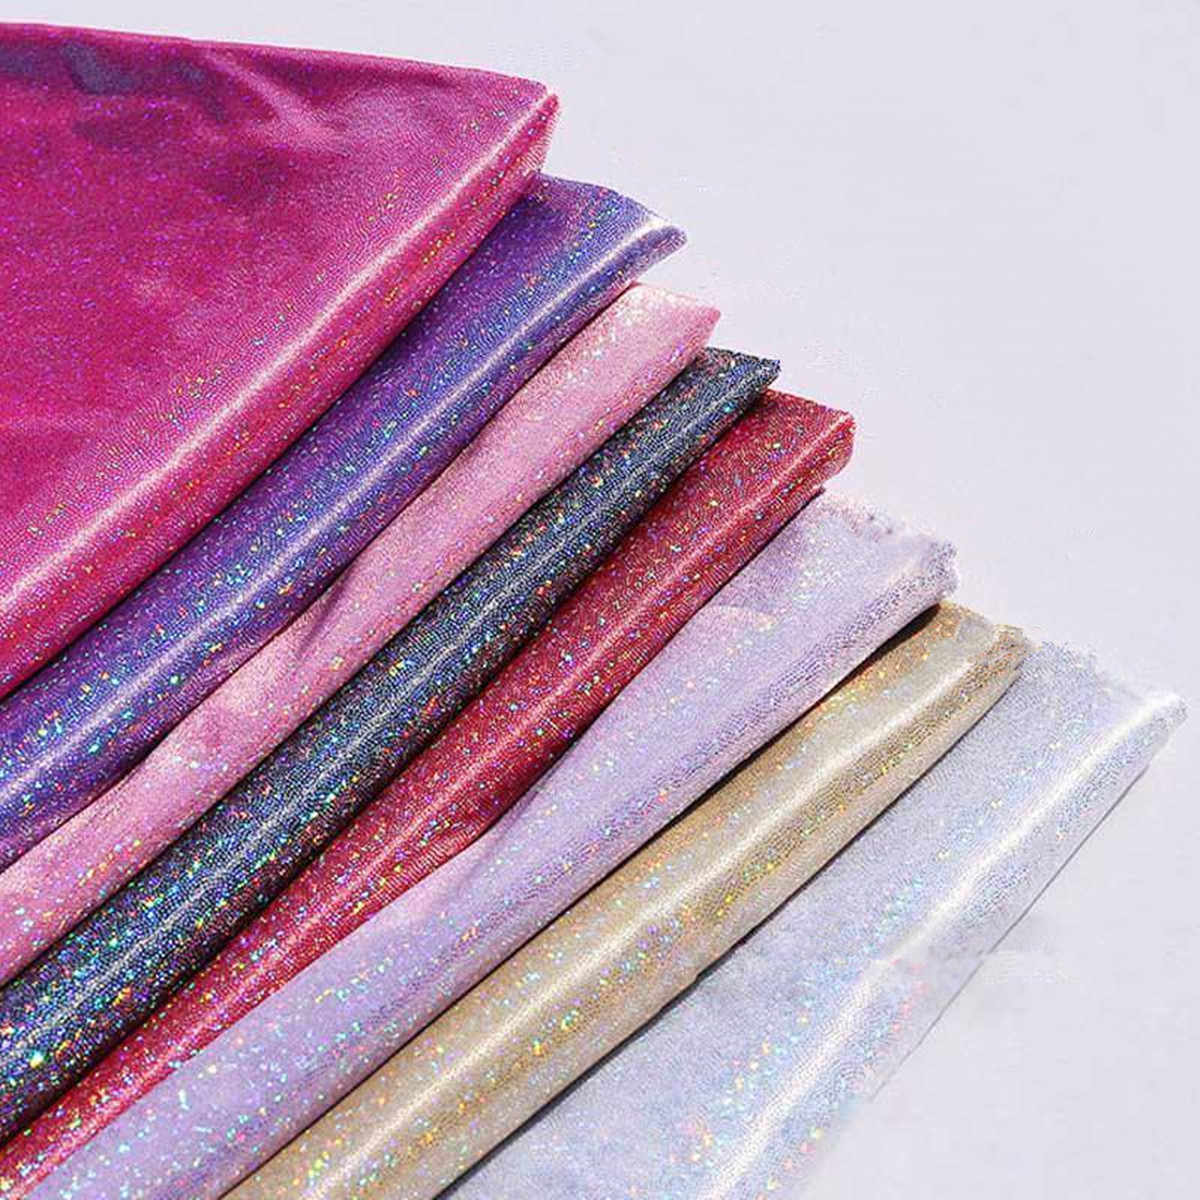 Glitter Iridescent Table Cloth Laser Fabric Stretch Knit Runner Photo Props 150x100cm Party Wedding Decorations Accessories